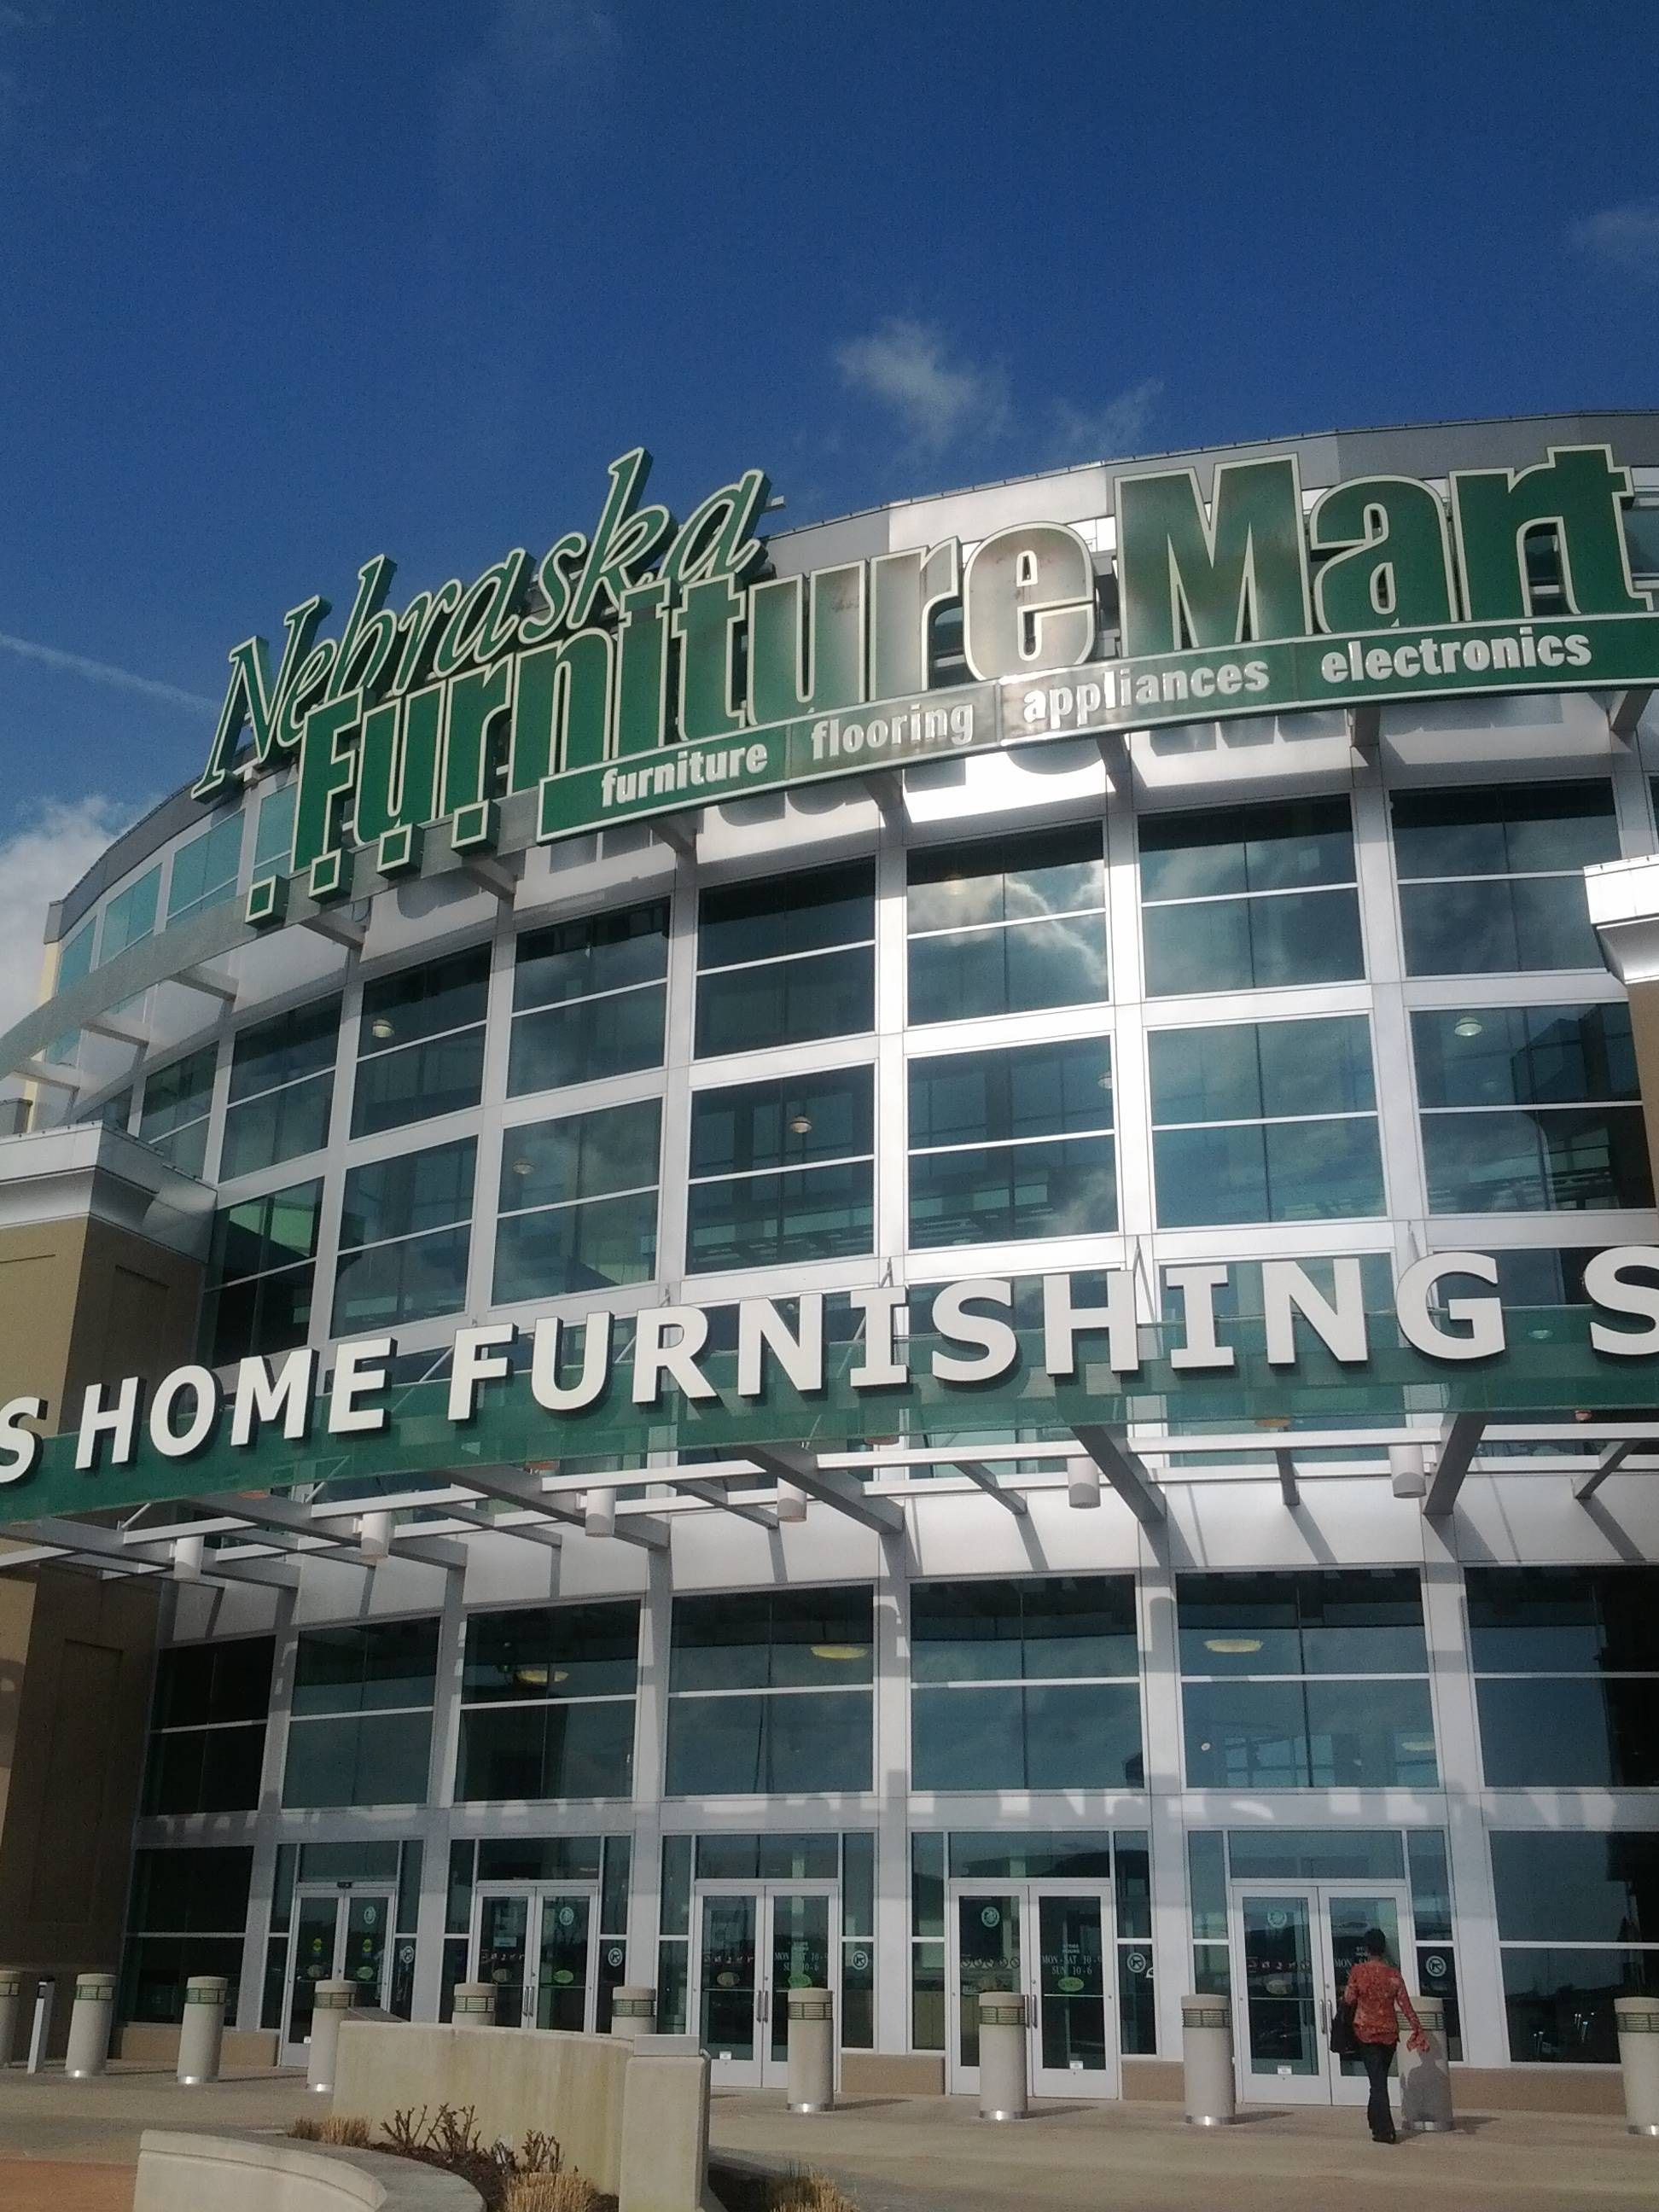 Charmant Nebraska Furniture Mart! Huge Nice Furniture Store At Legends Mall In Kansas  City.